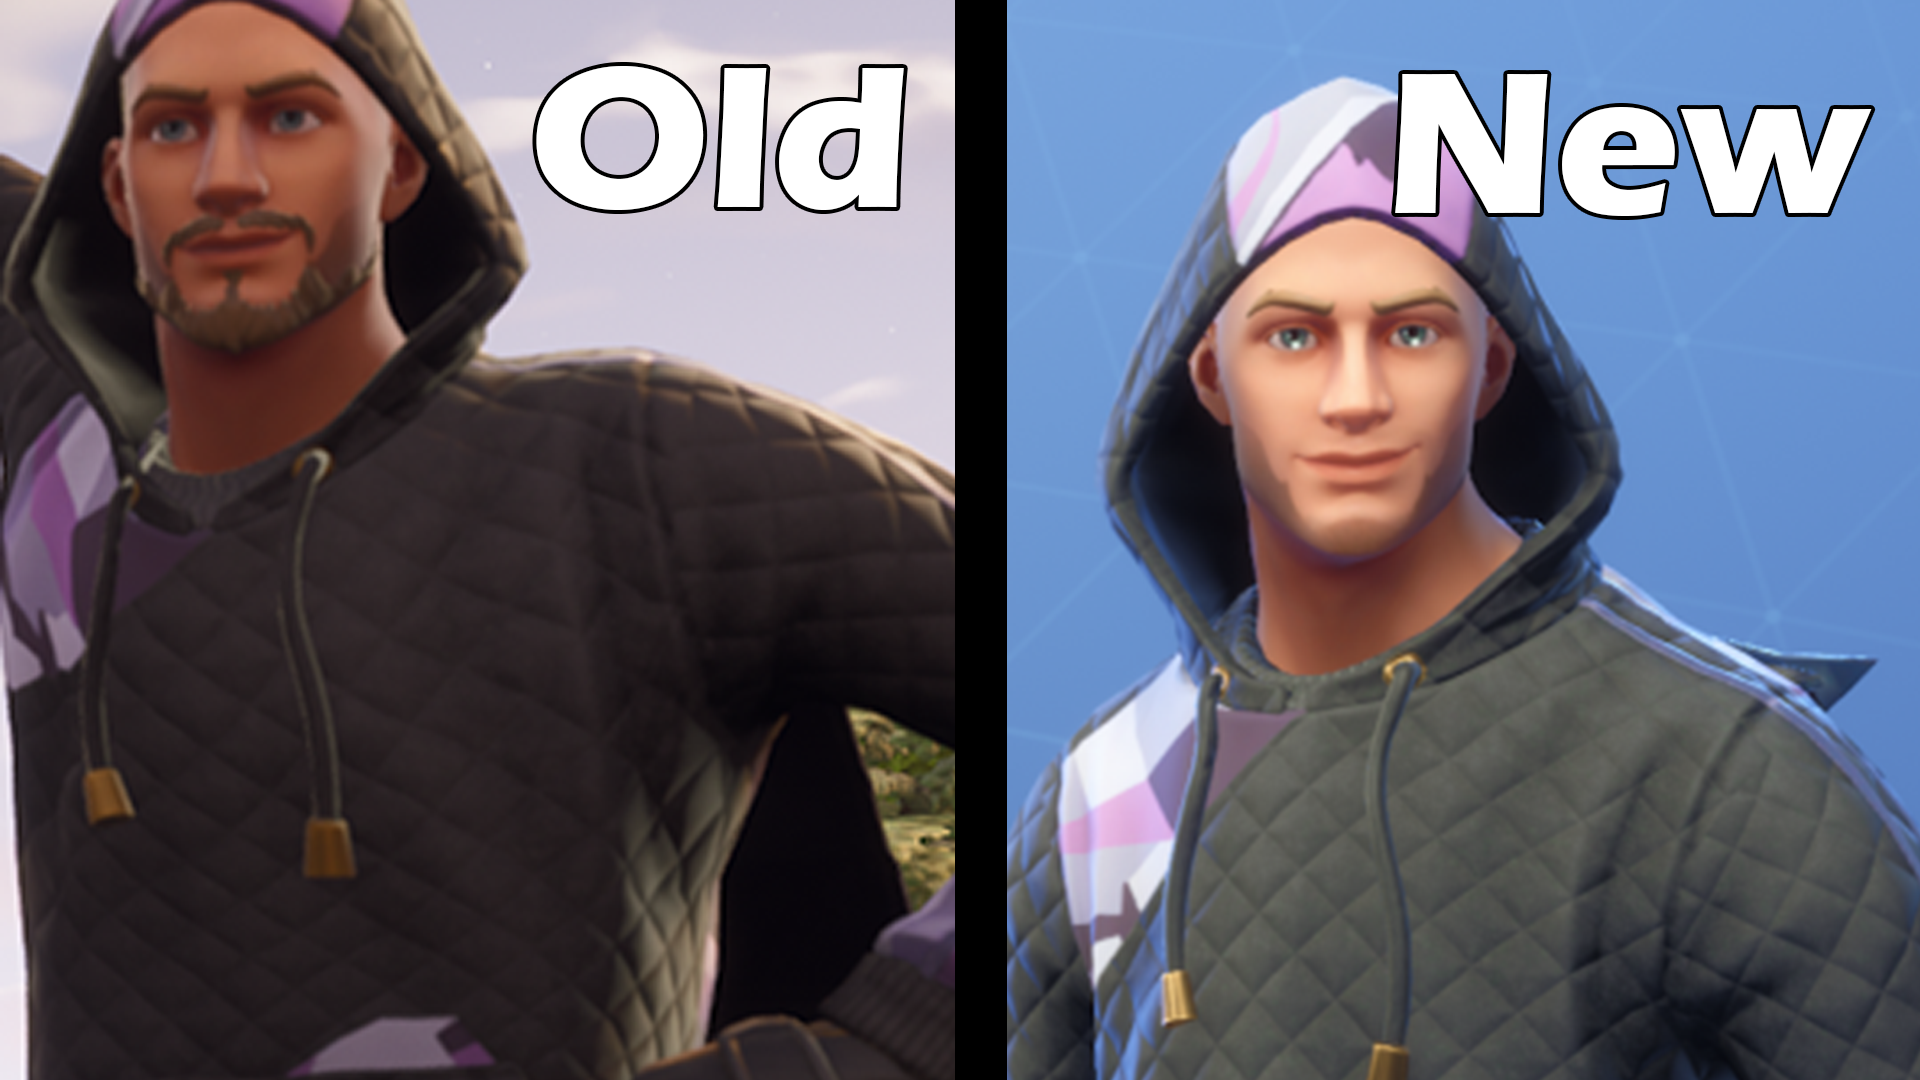 Did I miss something on what happened to Monikers beard FortNiteBR 1920x1080